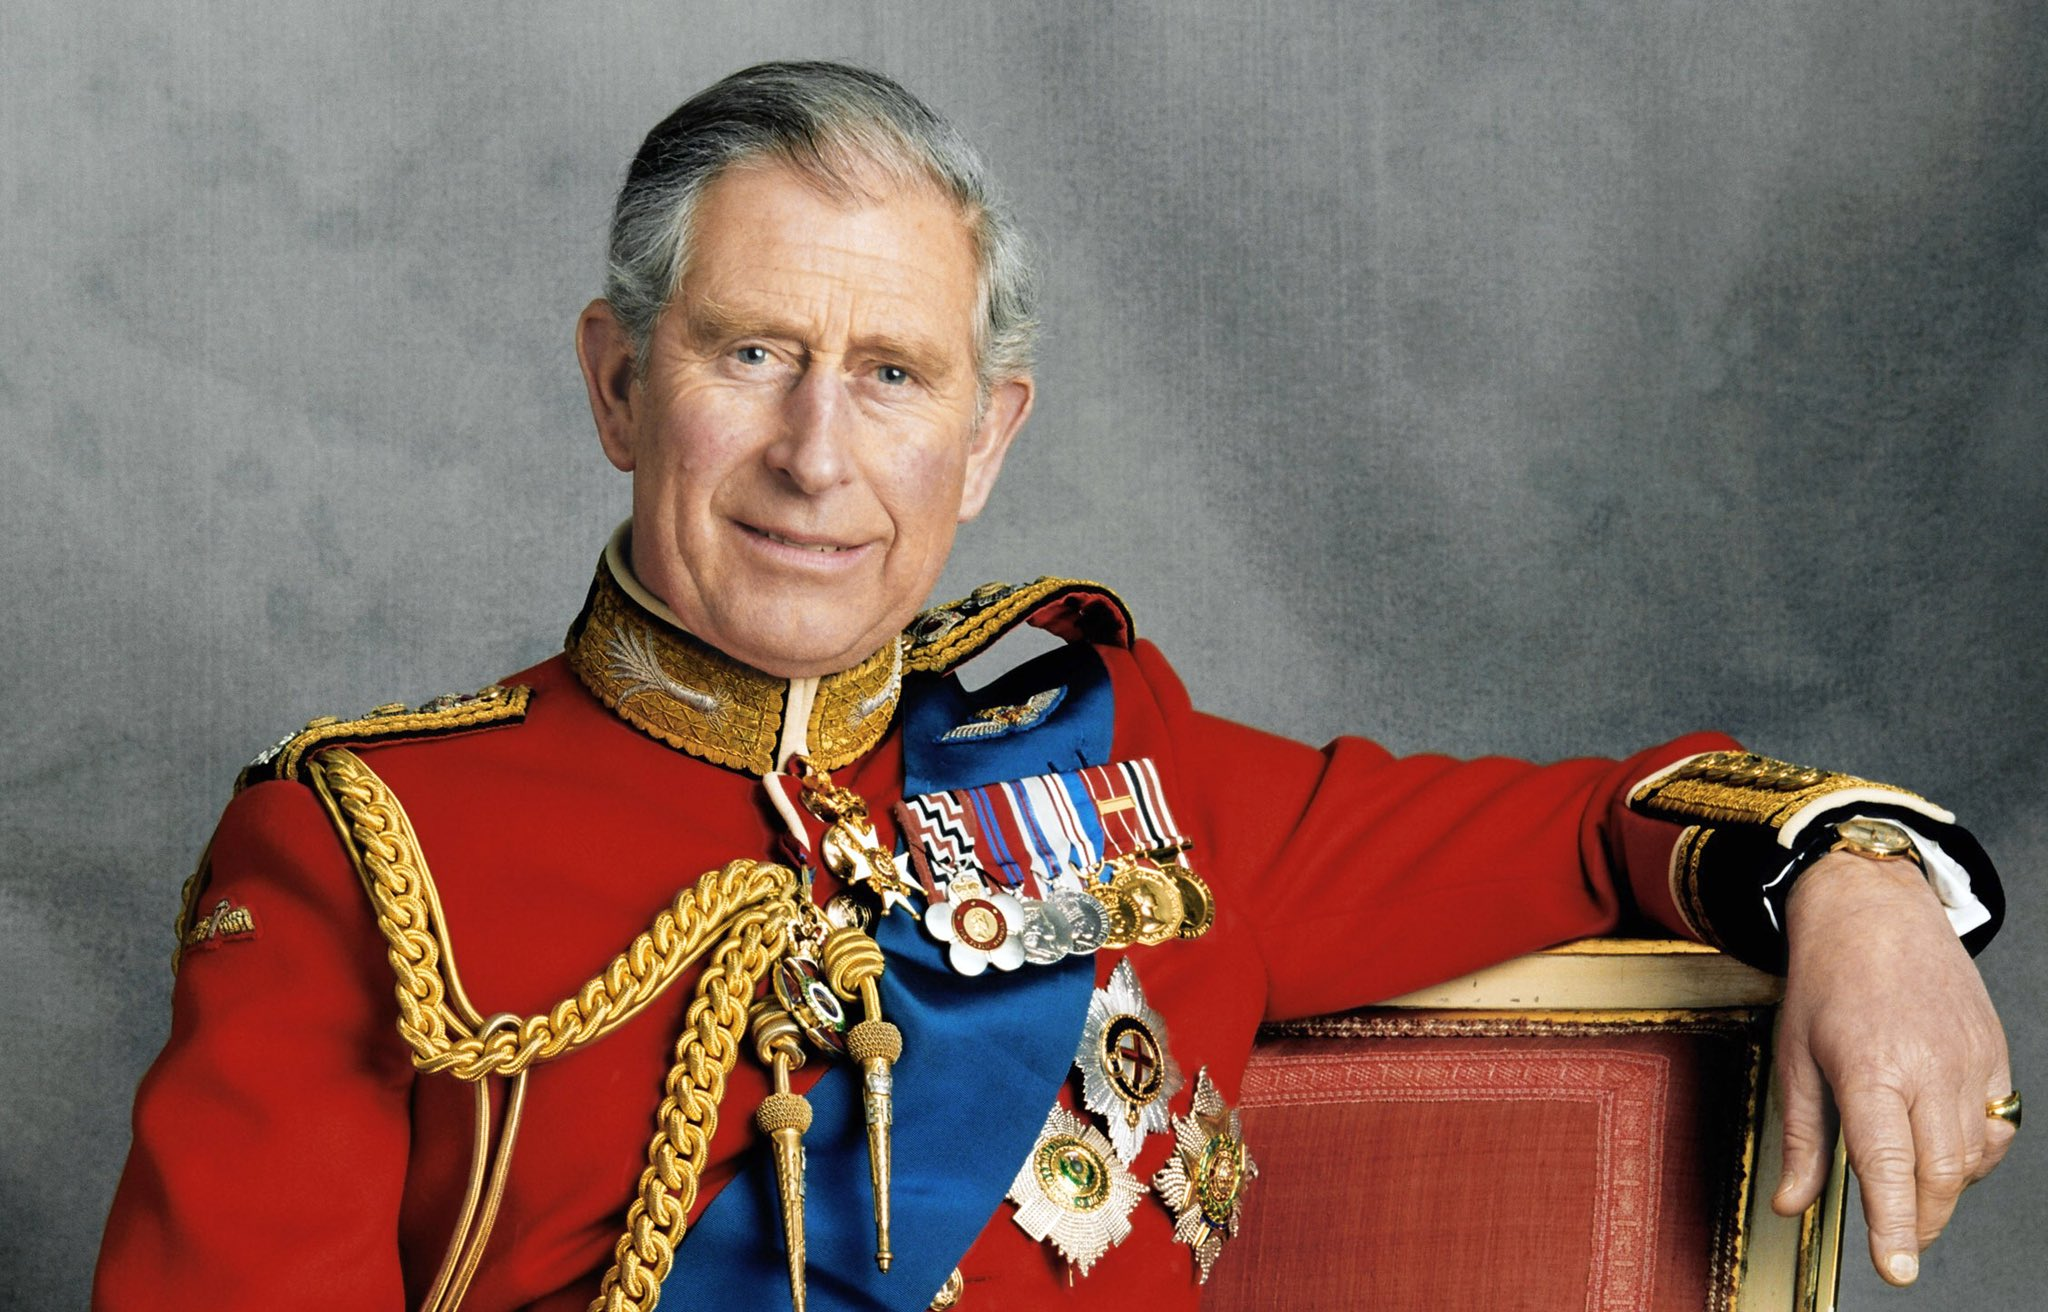 Happy 69th Birthday to Prince Charles!!